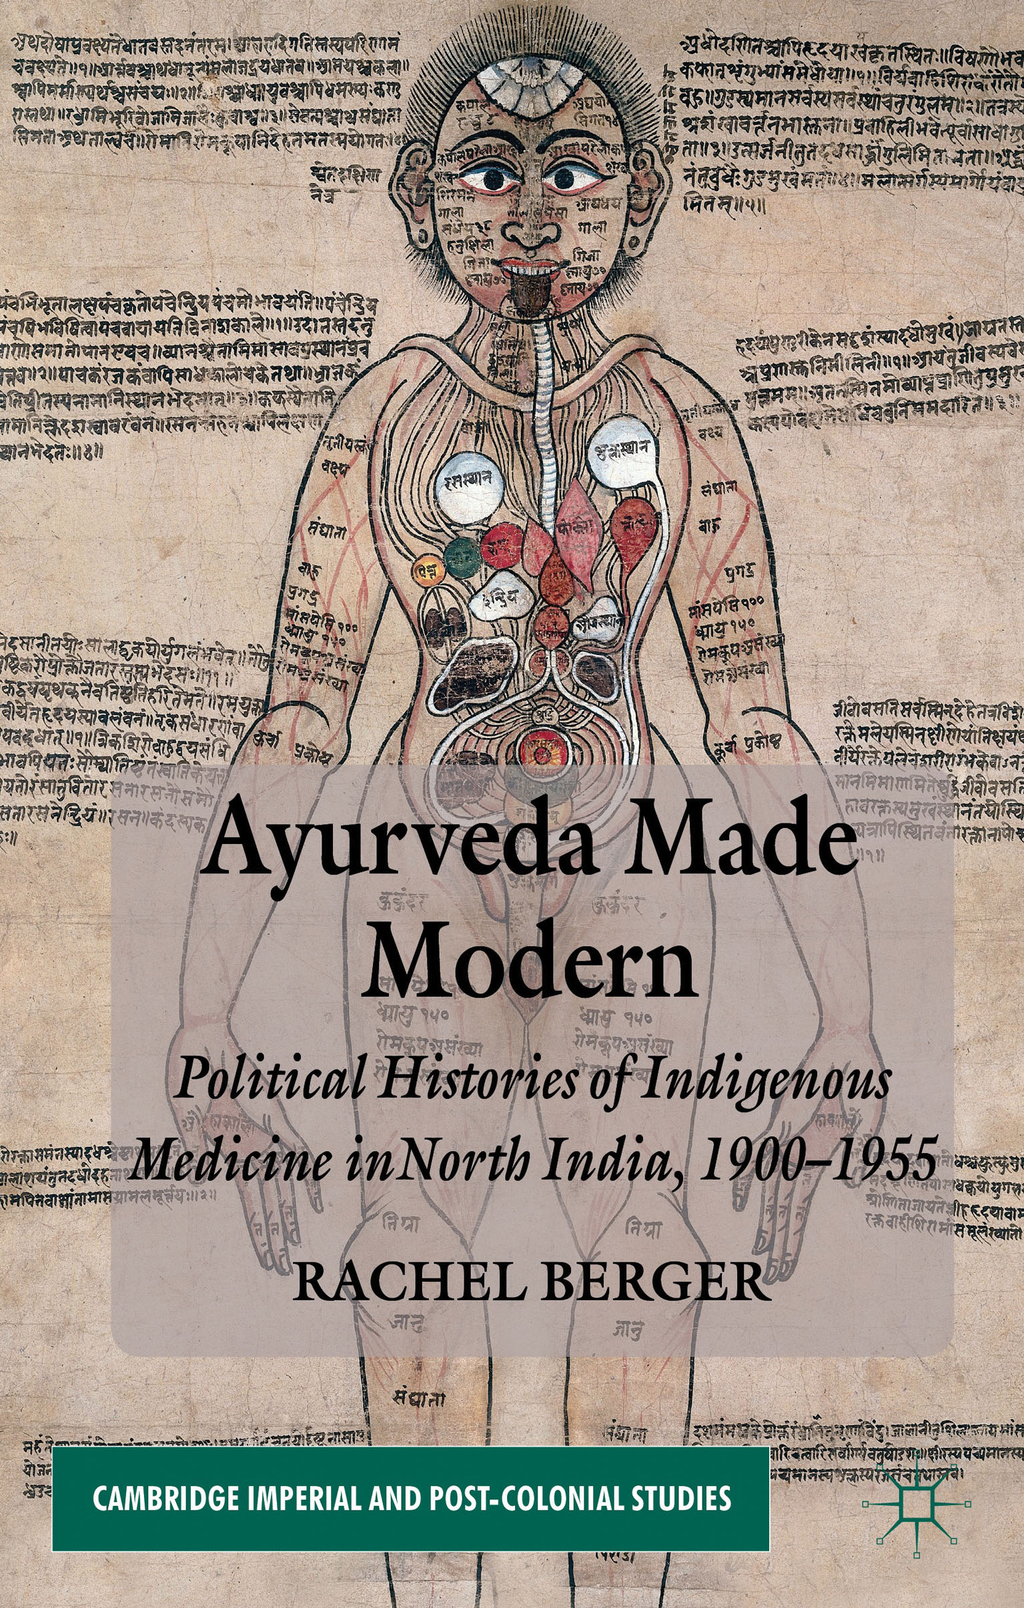 Ayurveda Made Modern Political Histories of Indigenous Medicine in North India,  1900-1955